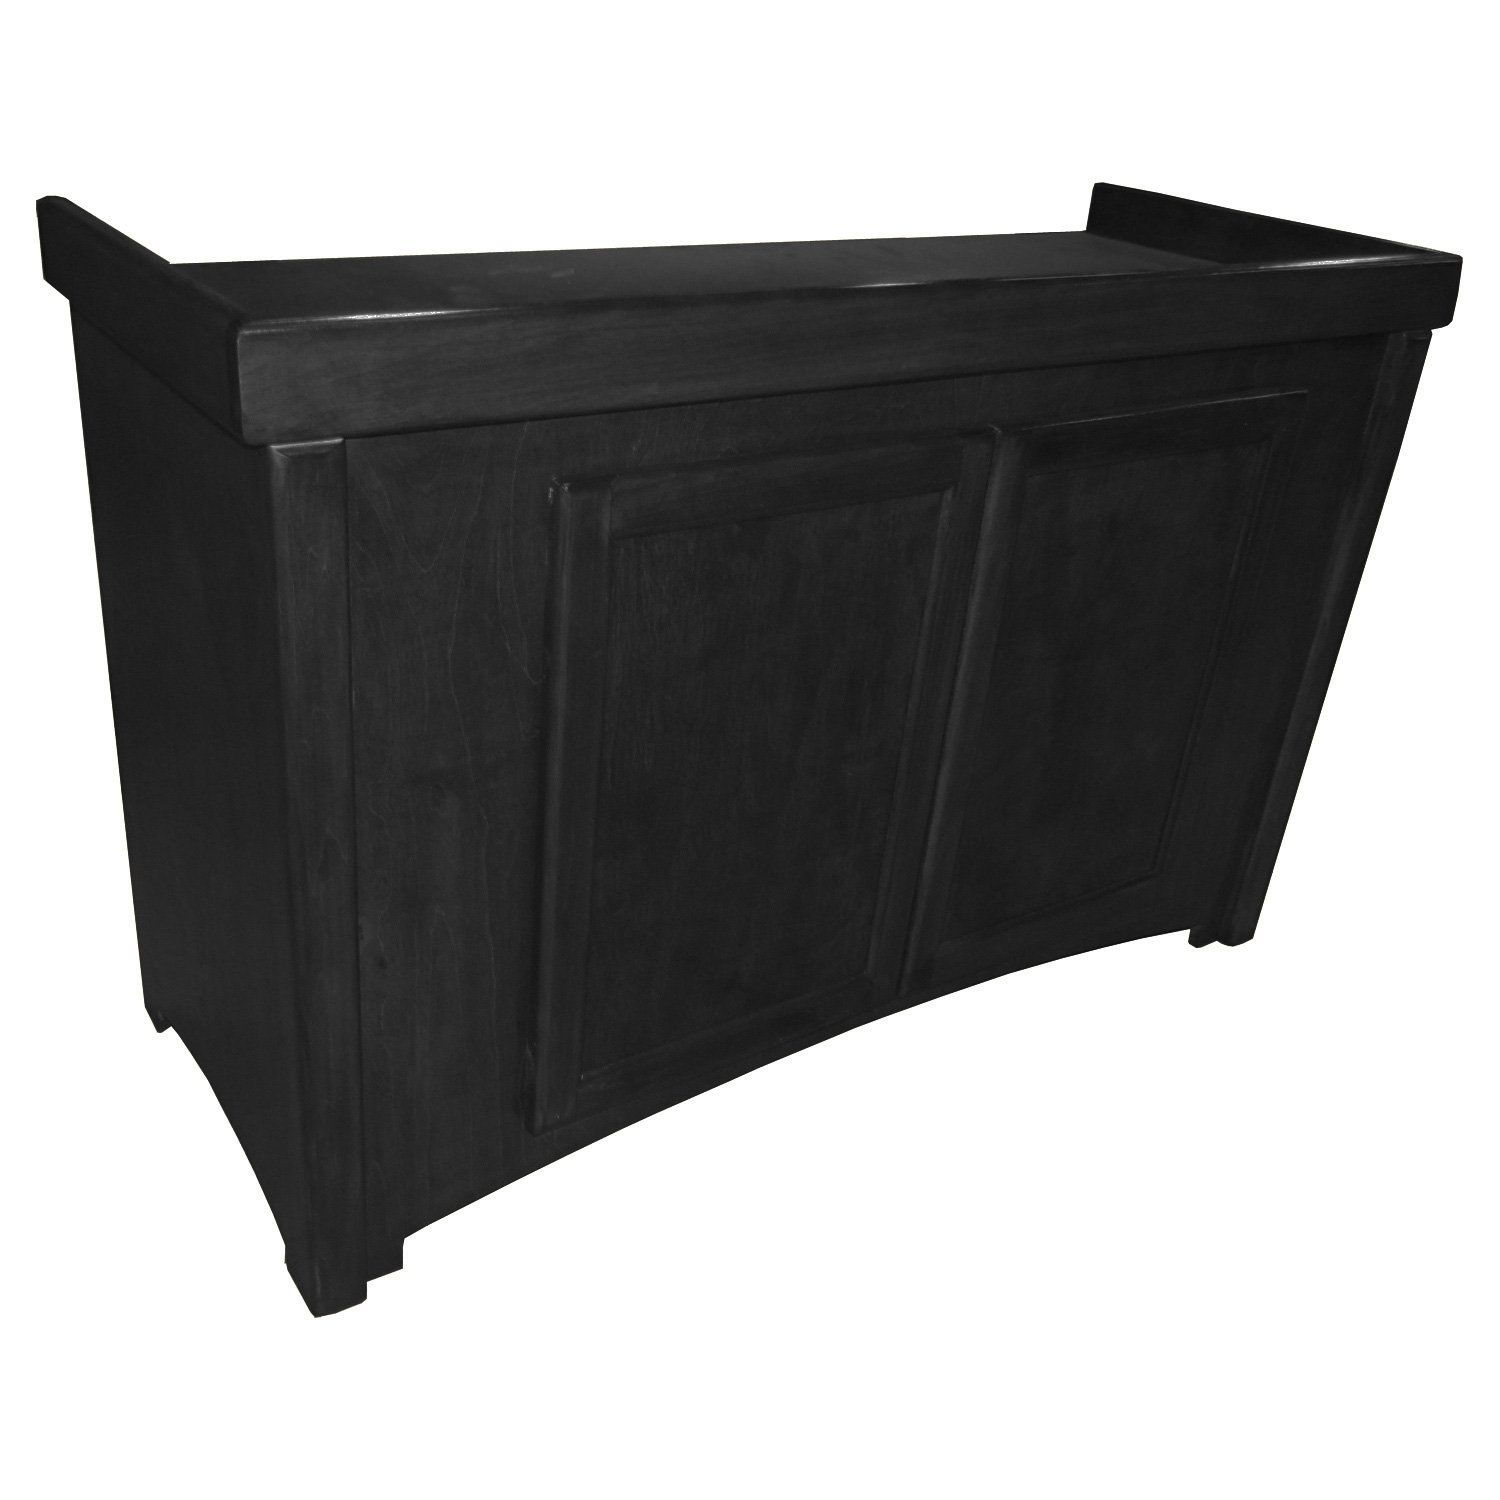 R&J Enterprises 48X13 Black Birch Calypso Series 55 Cabinet